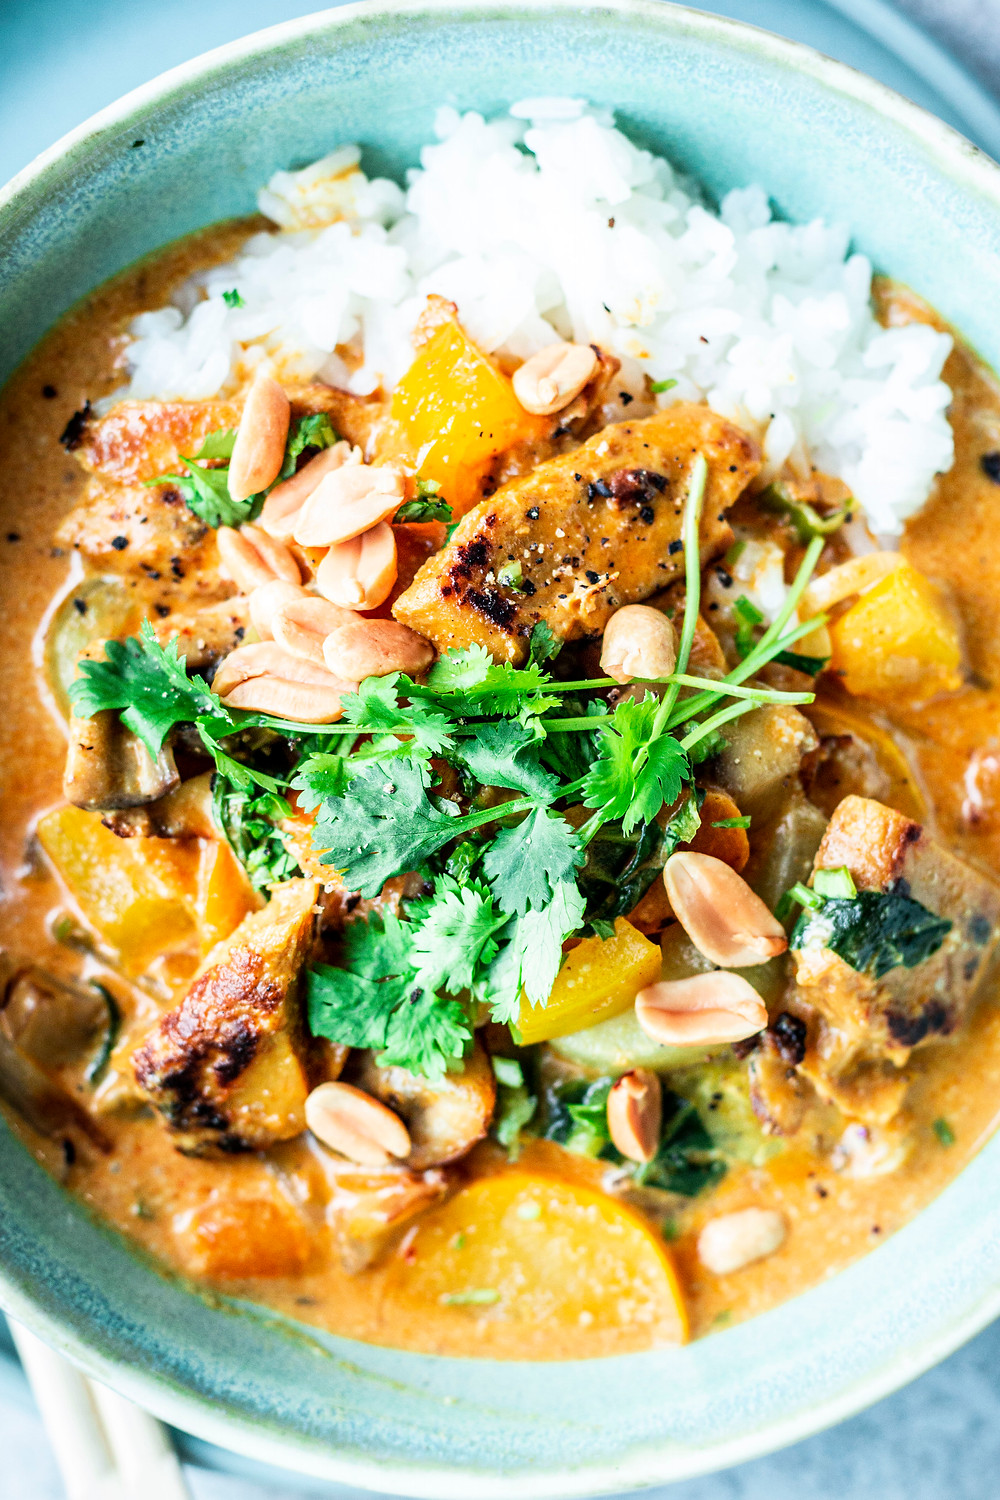 Dieses einfache und schnelle Thai Curry Rezept ist vollgepackt mit Gemüse, vegan und super lecker – MOE'S QUICK & EASY FOOD #vegan #chickencurry #curry #abendessen